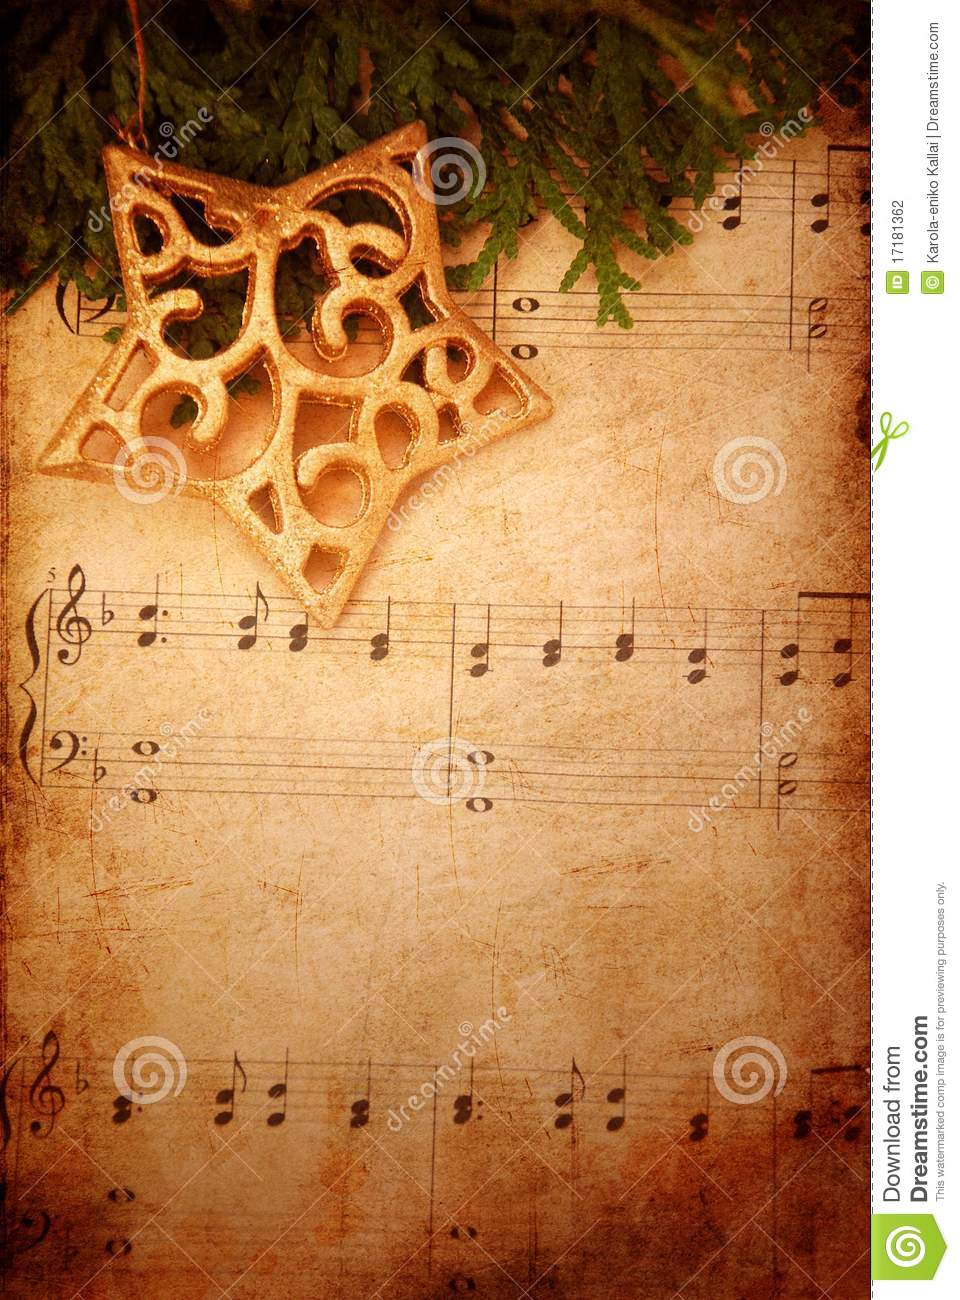 Christmas Background With Old Sheet Music Stock Photo - Image of ...